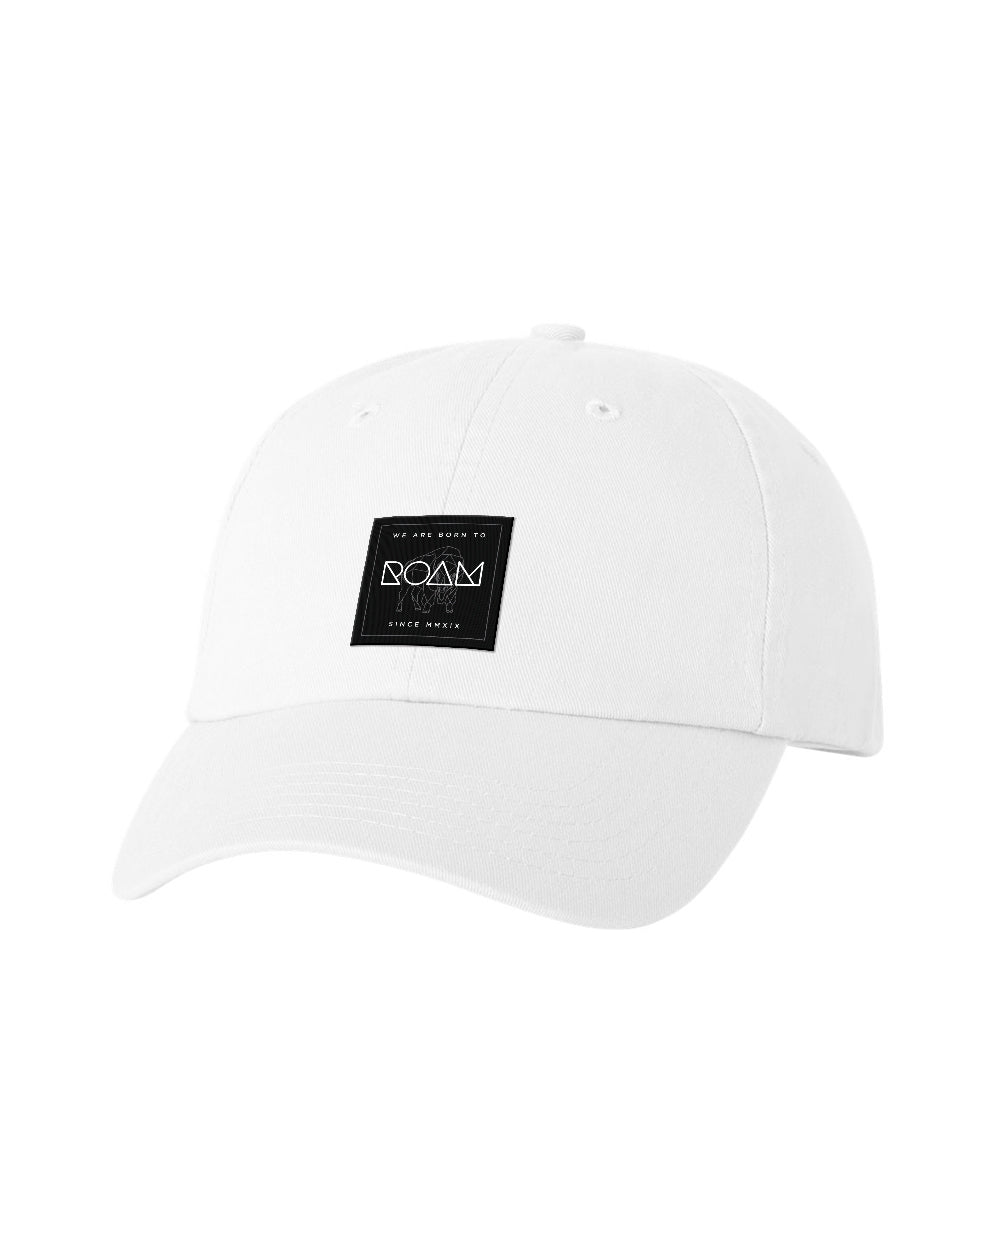 Mosaic Overlay Patch Dad Cap - White - Front